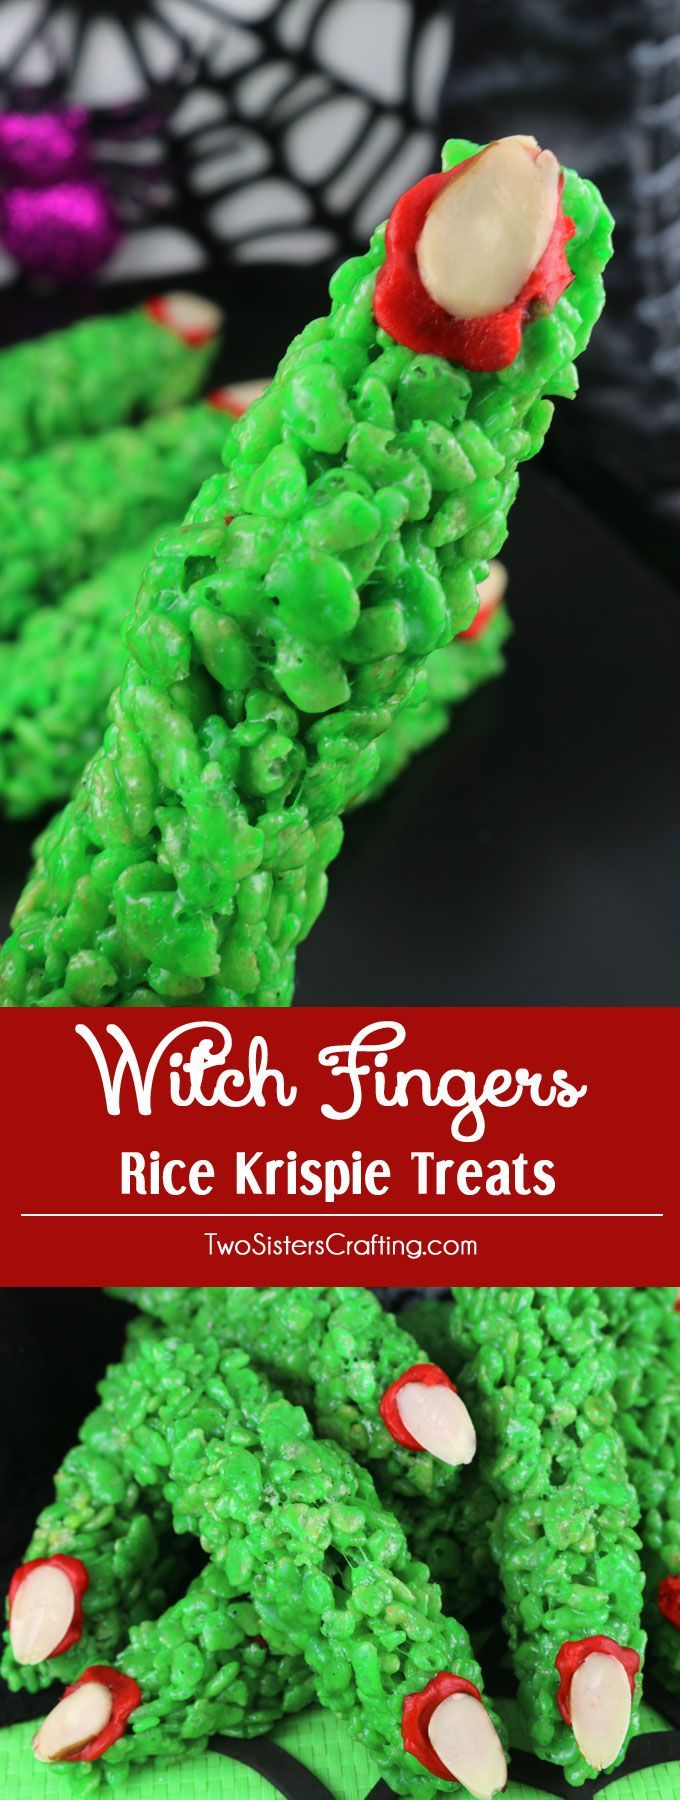 Witch Fingers Rice Krispie Treats - yummy and creepy Witch Fingers made out of crunchy, marshmallow-y Rice Krispie Cereal. Cute! Fun! Easy! This colorful and festive Halloween Dessert is a great treat for a Halloween Party. Pin this fun Halloween Treat for later and follow us for more fun Halloween Food ideas.